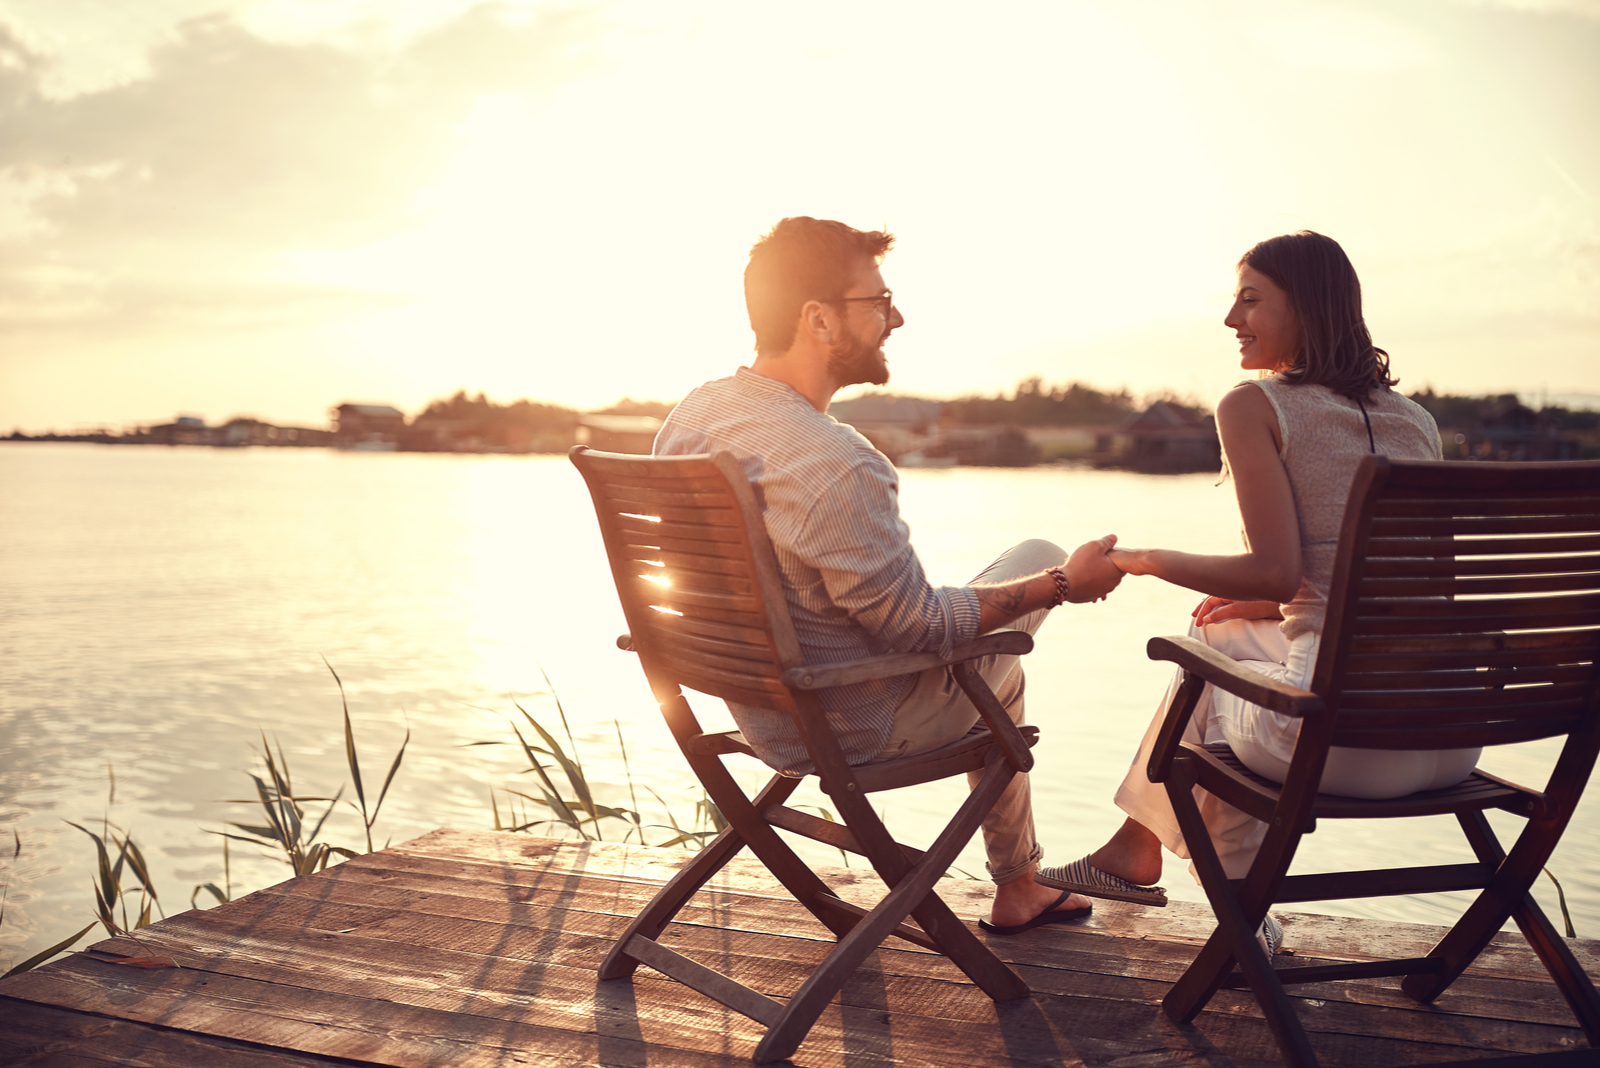 a man and a woman are sitting next to the pier holding hands